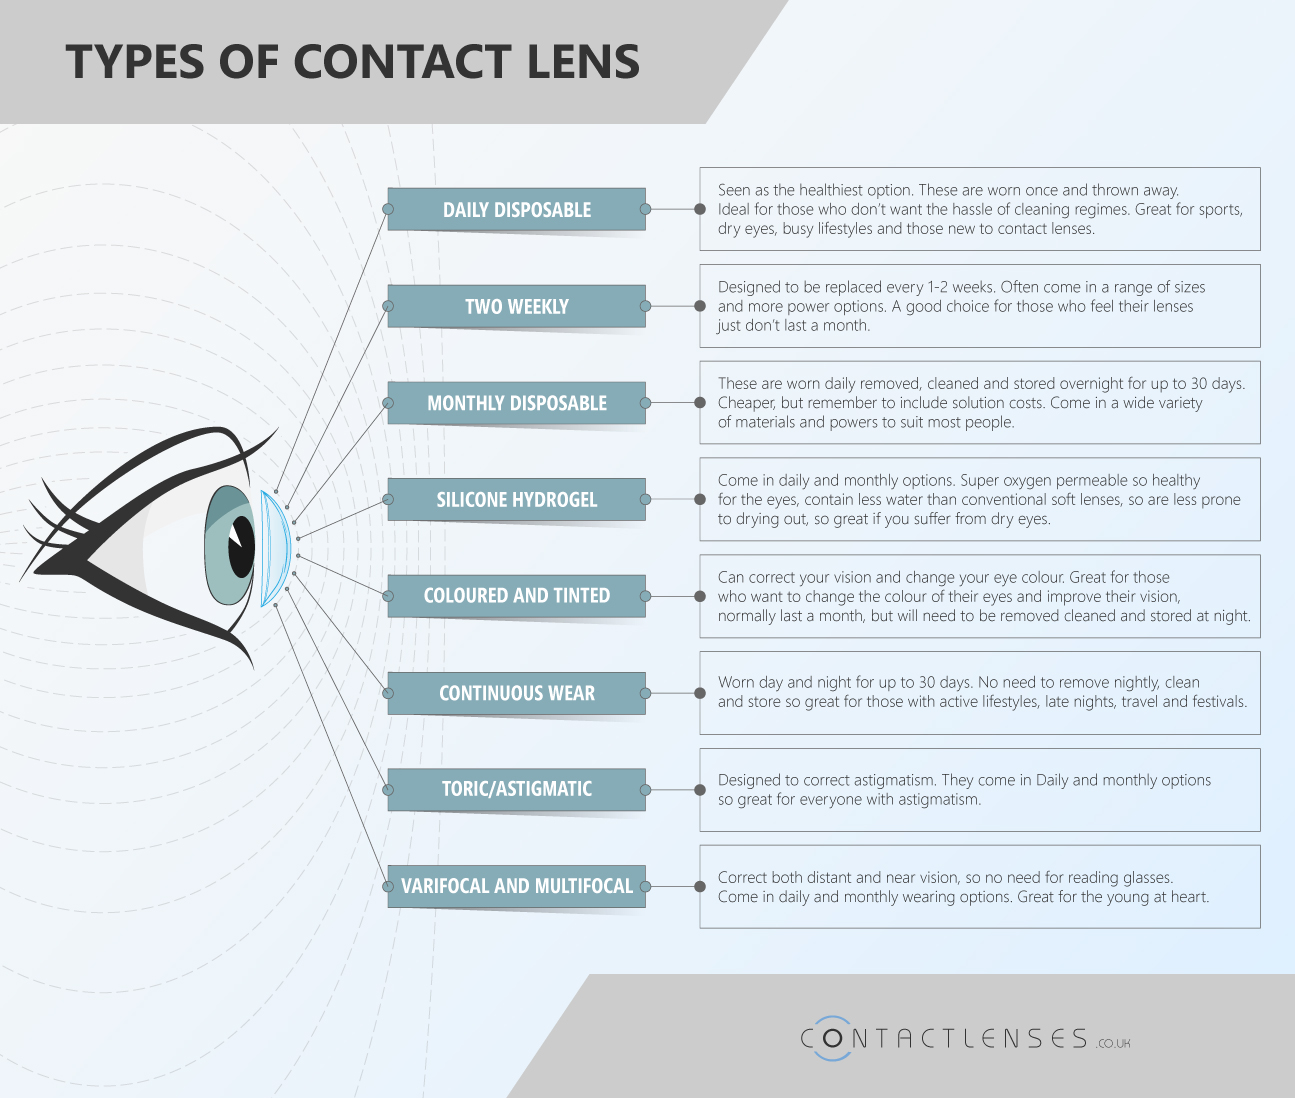 Contact lens types: an introduction